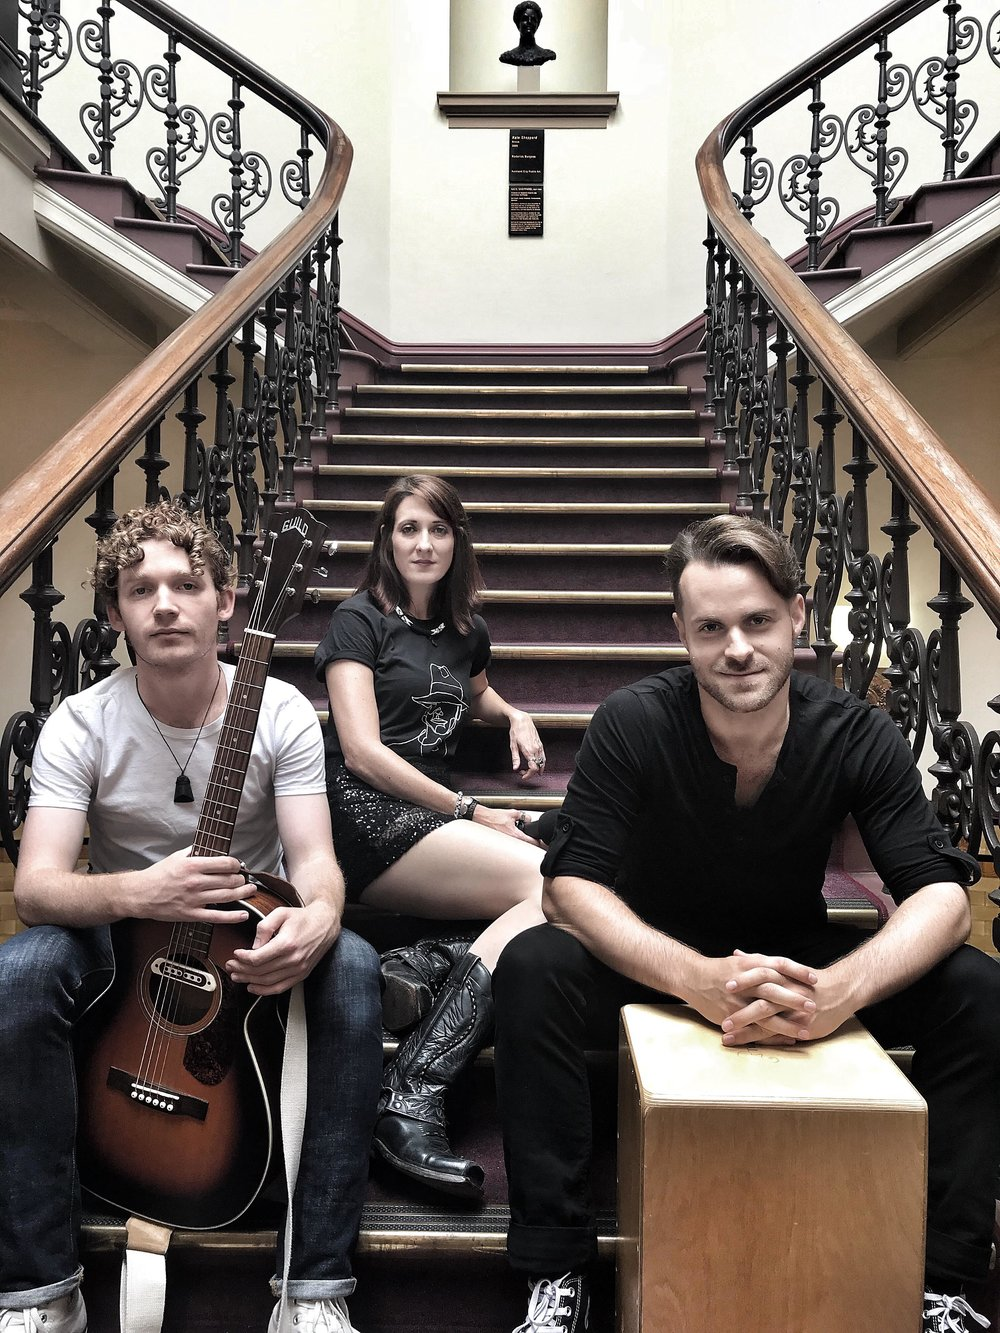 The Dead Travellers @ The Auckland Town Hall as part of the Outsider Sounds/Auckland Fringe Festival.